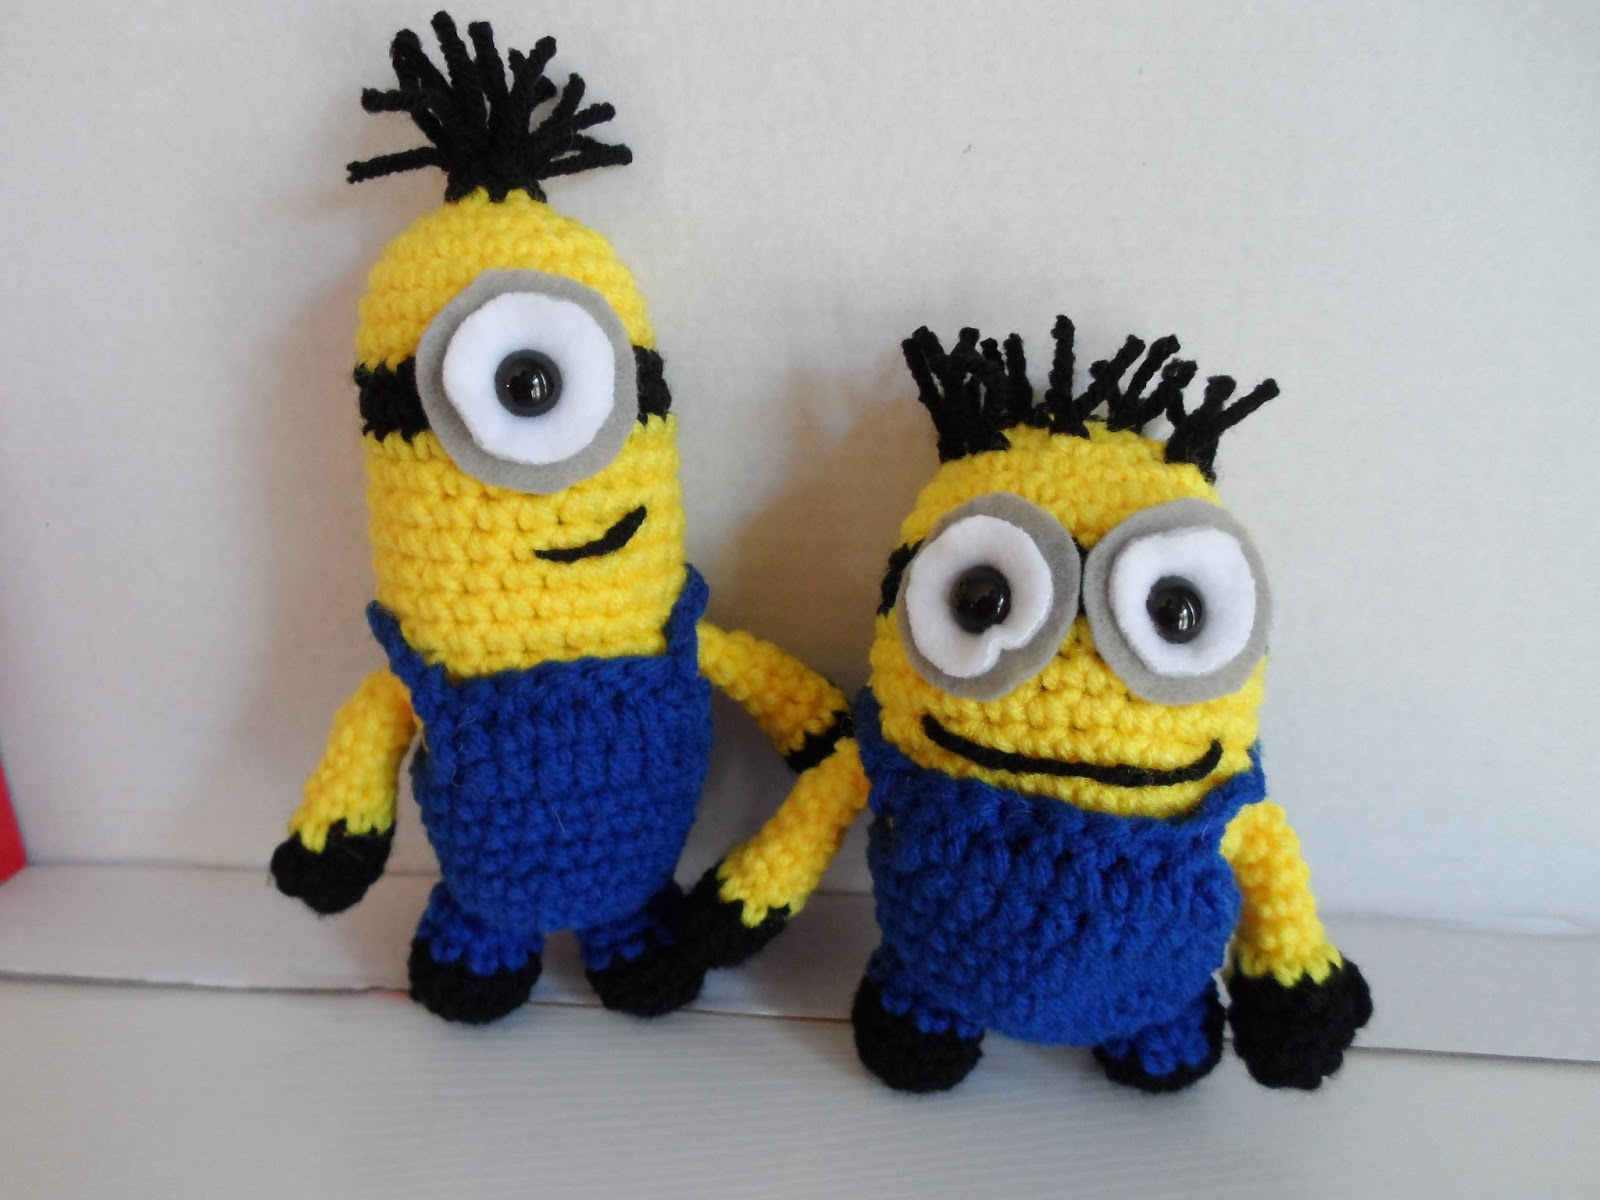 Free Crochet Pattern For Minion Eyes : Kristens Crochet: Minions Revisited